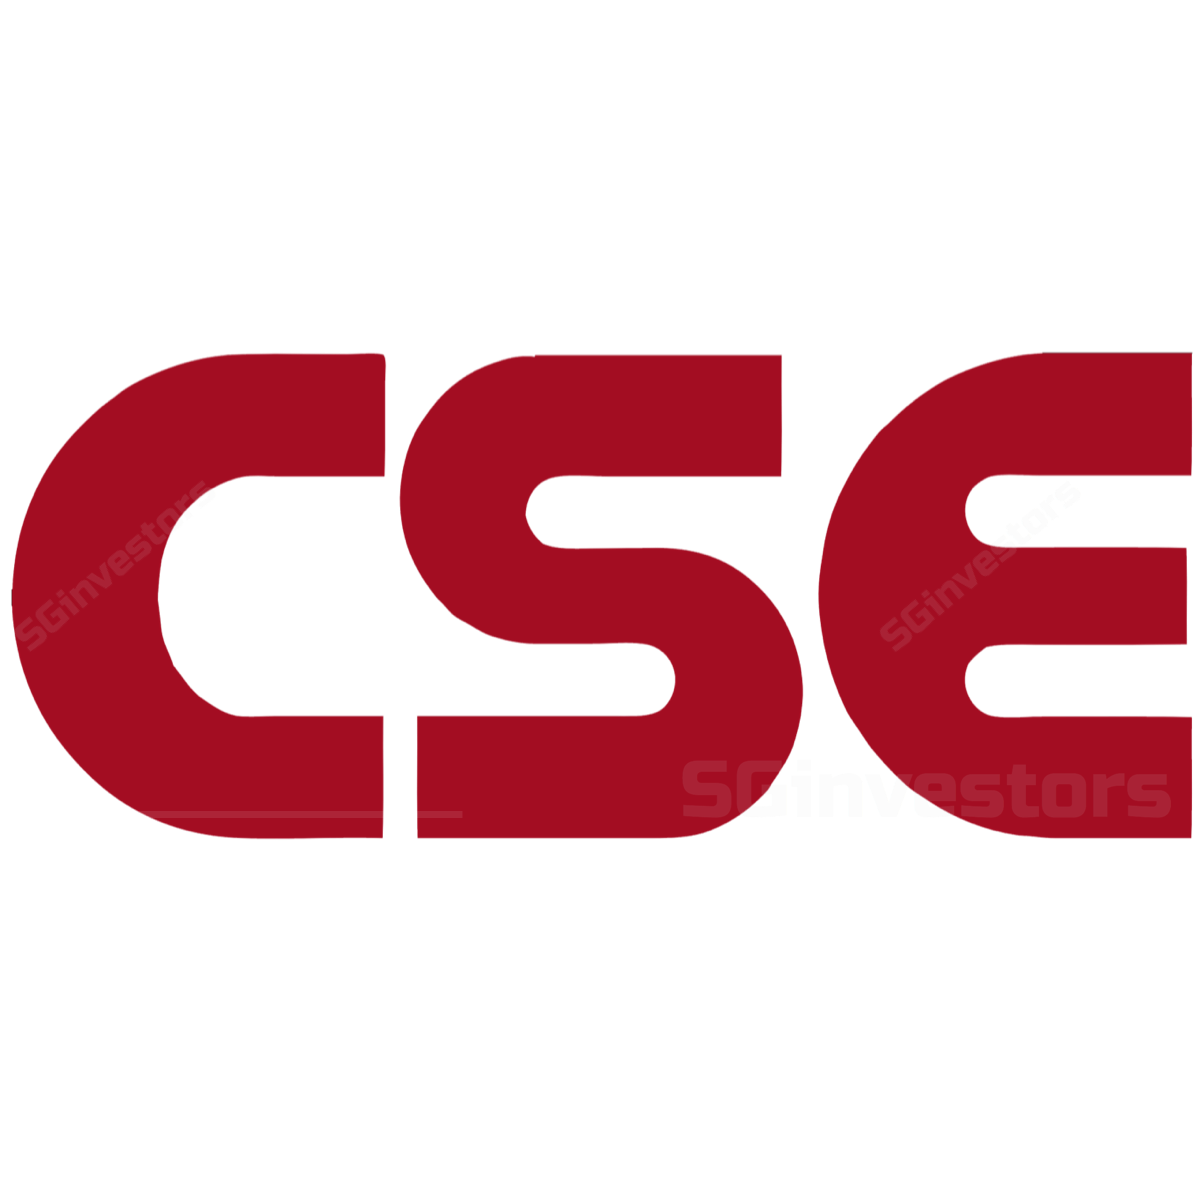 CSE Global Limited - OCBC Investment 2017-03-13: Won two contracts worth US$30m